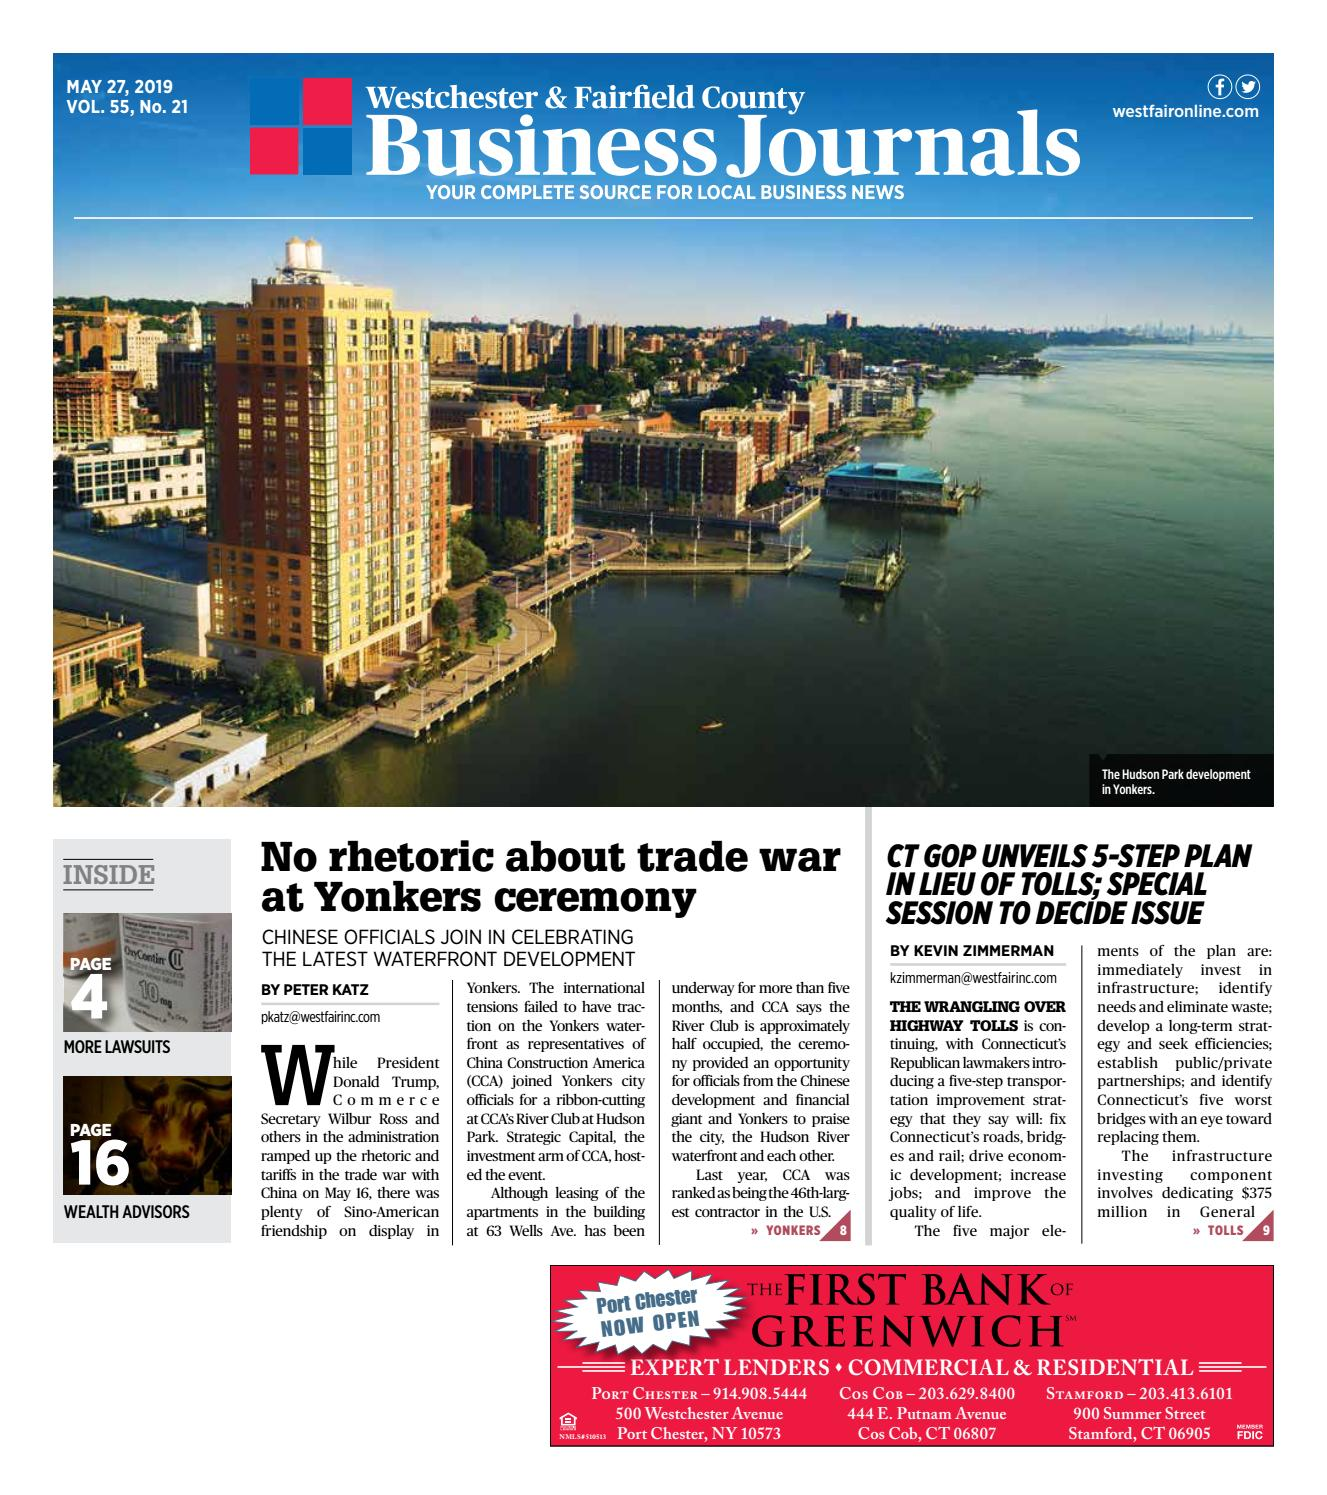 Westchester and Fairfield County Business Journals 052719 by